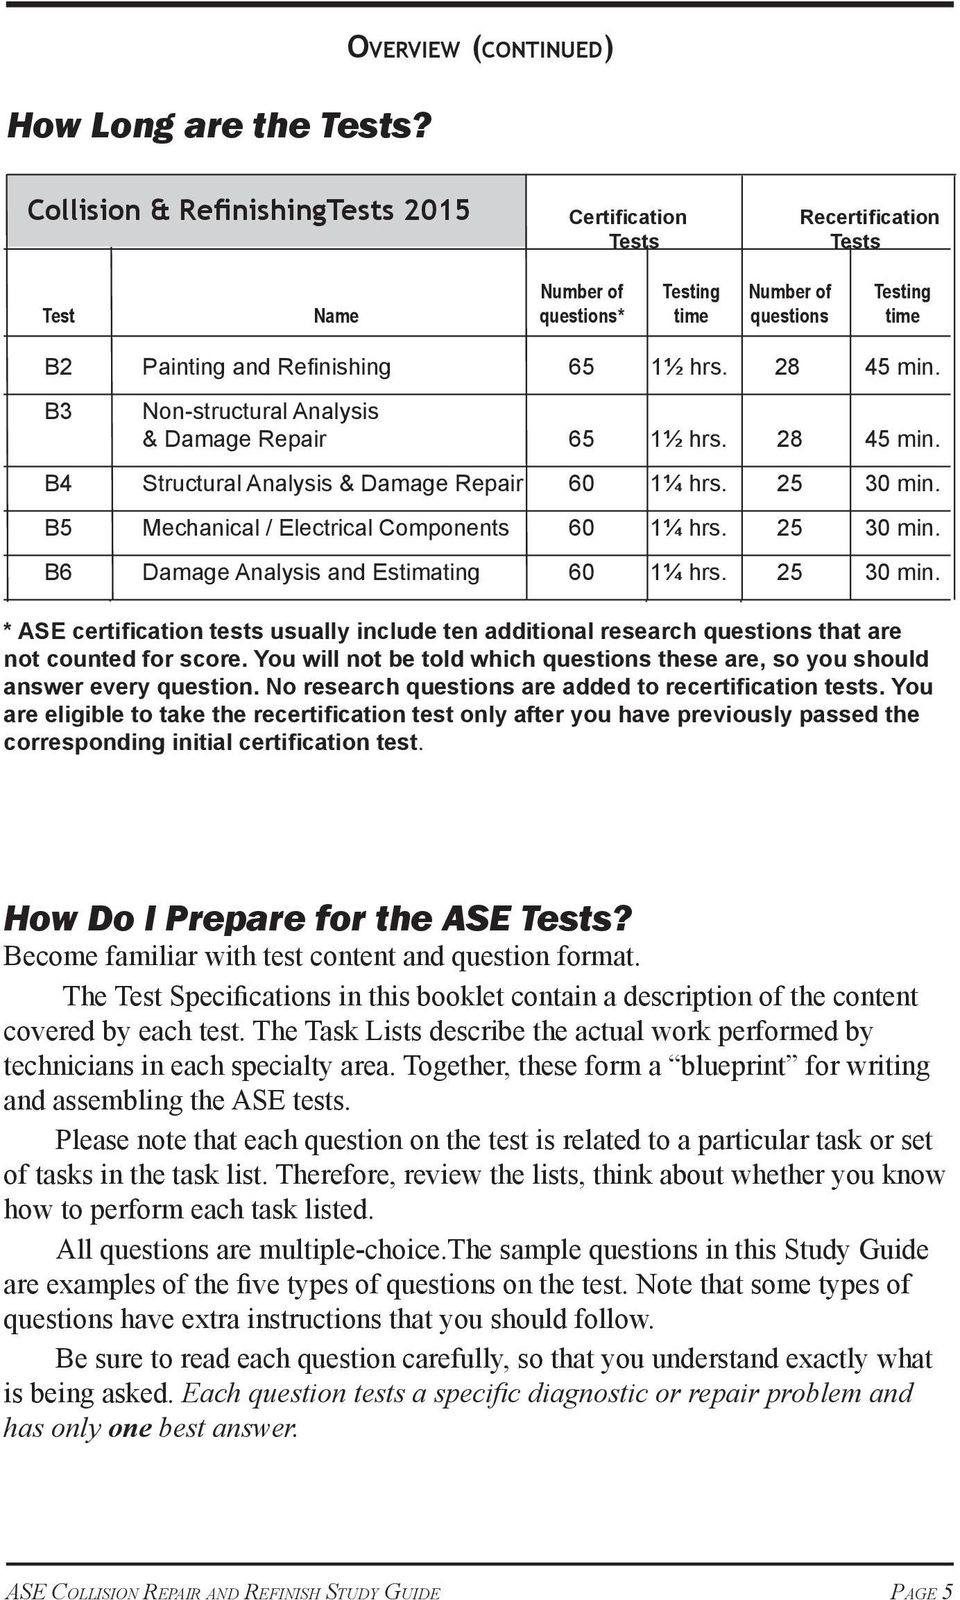 Ase Collision Repair And Refinish Tests Pdf